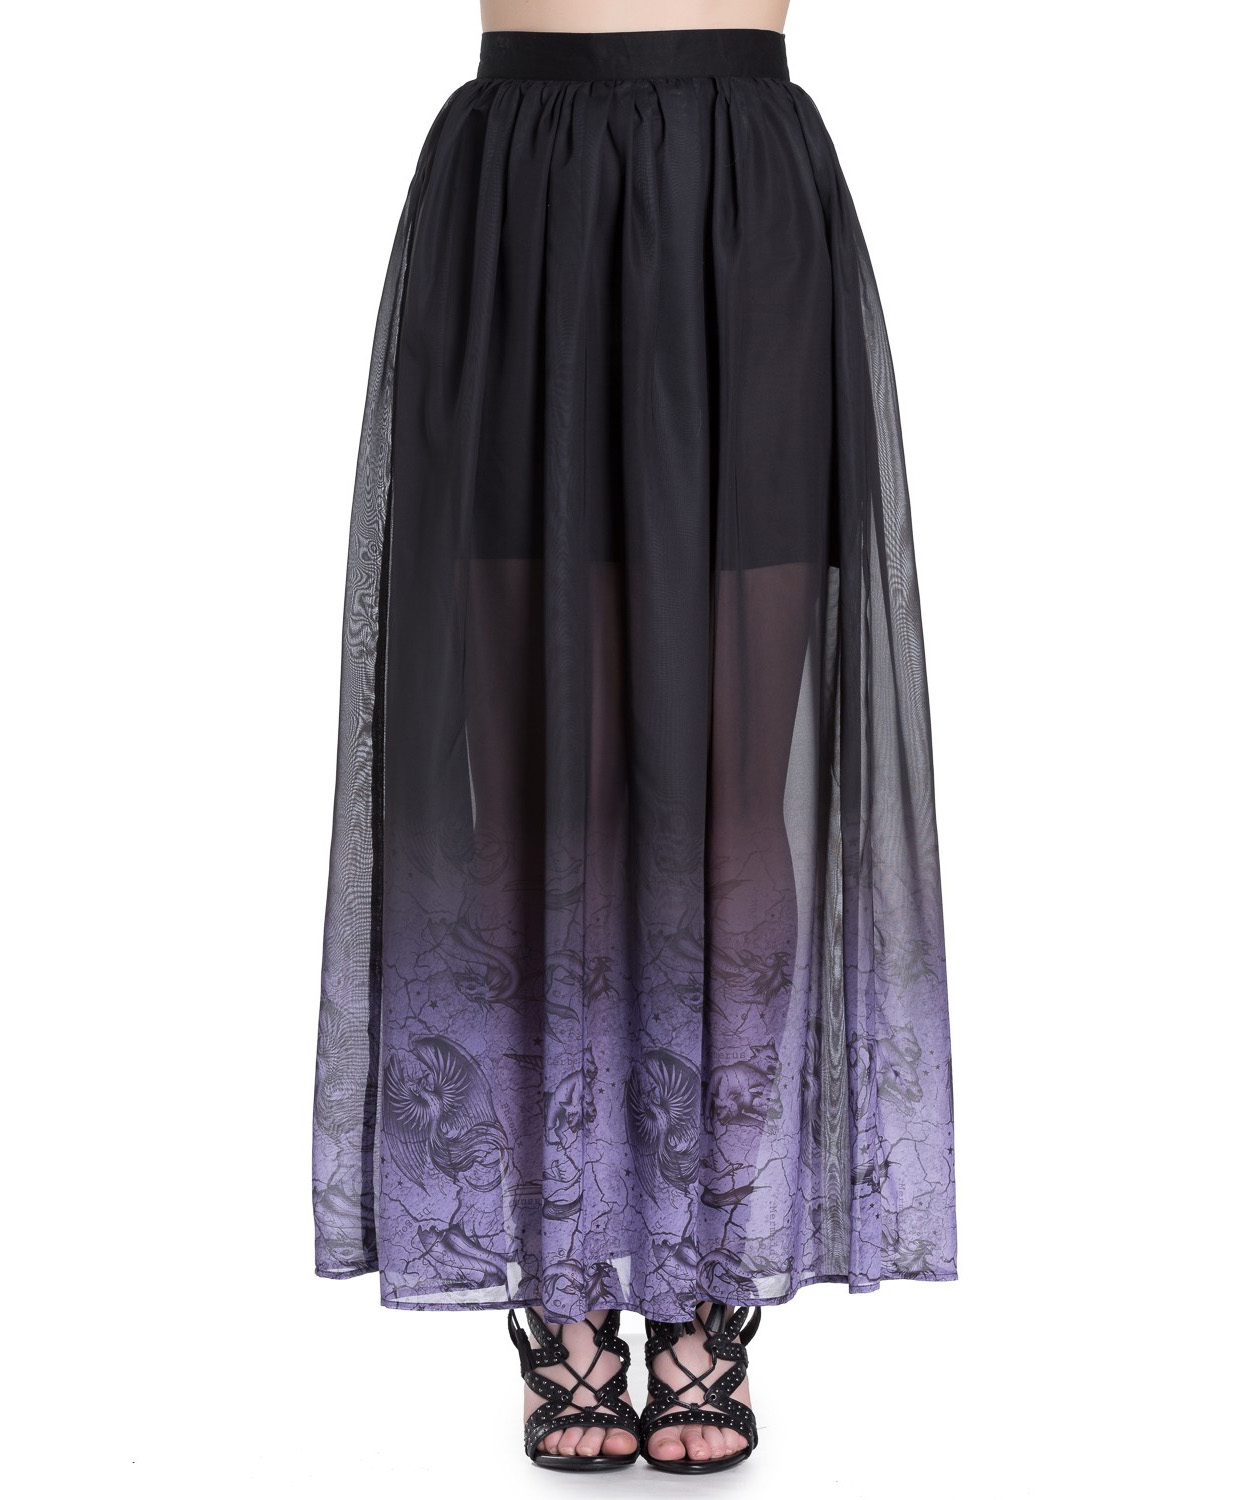 Hell-Bunny-Spin-Doctor-Goth-Purple-Mystical-EVADINE-Maxi-Skirt-All-Sizes thumbnail 15